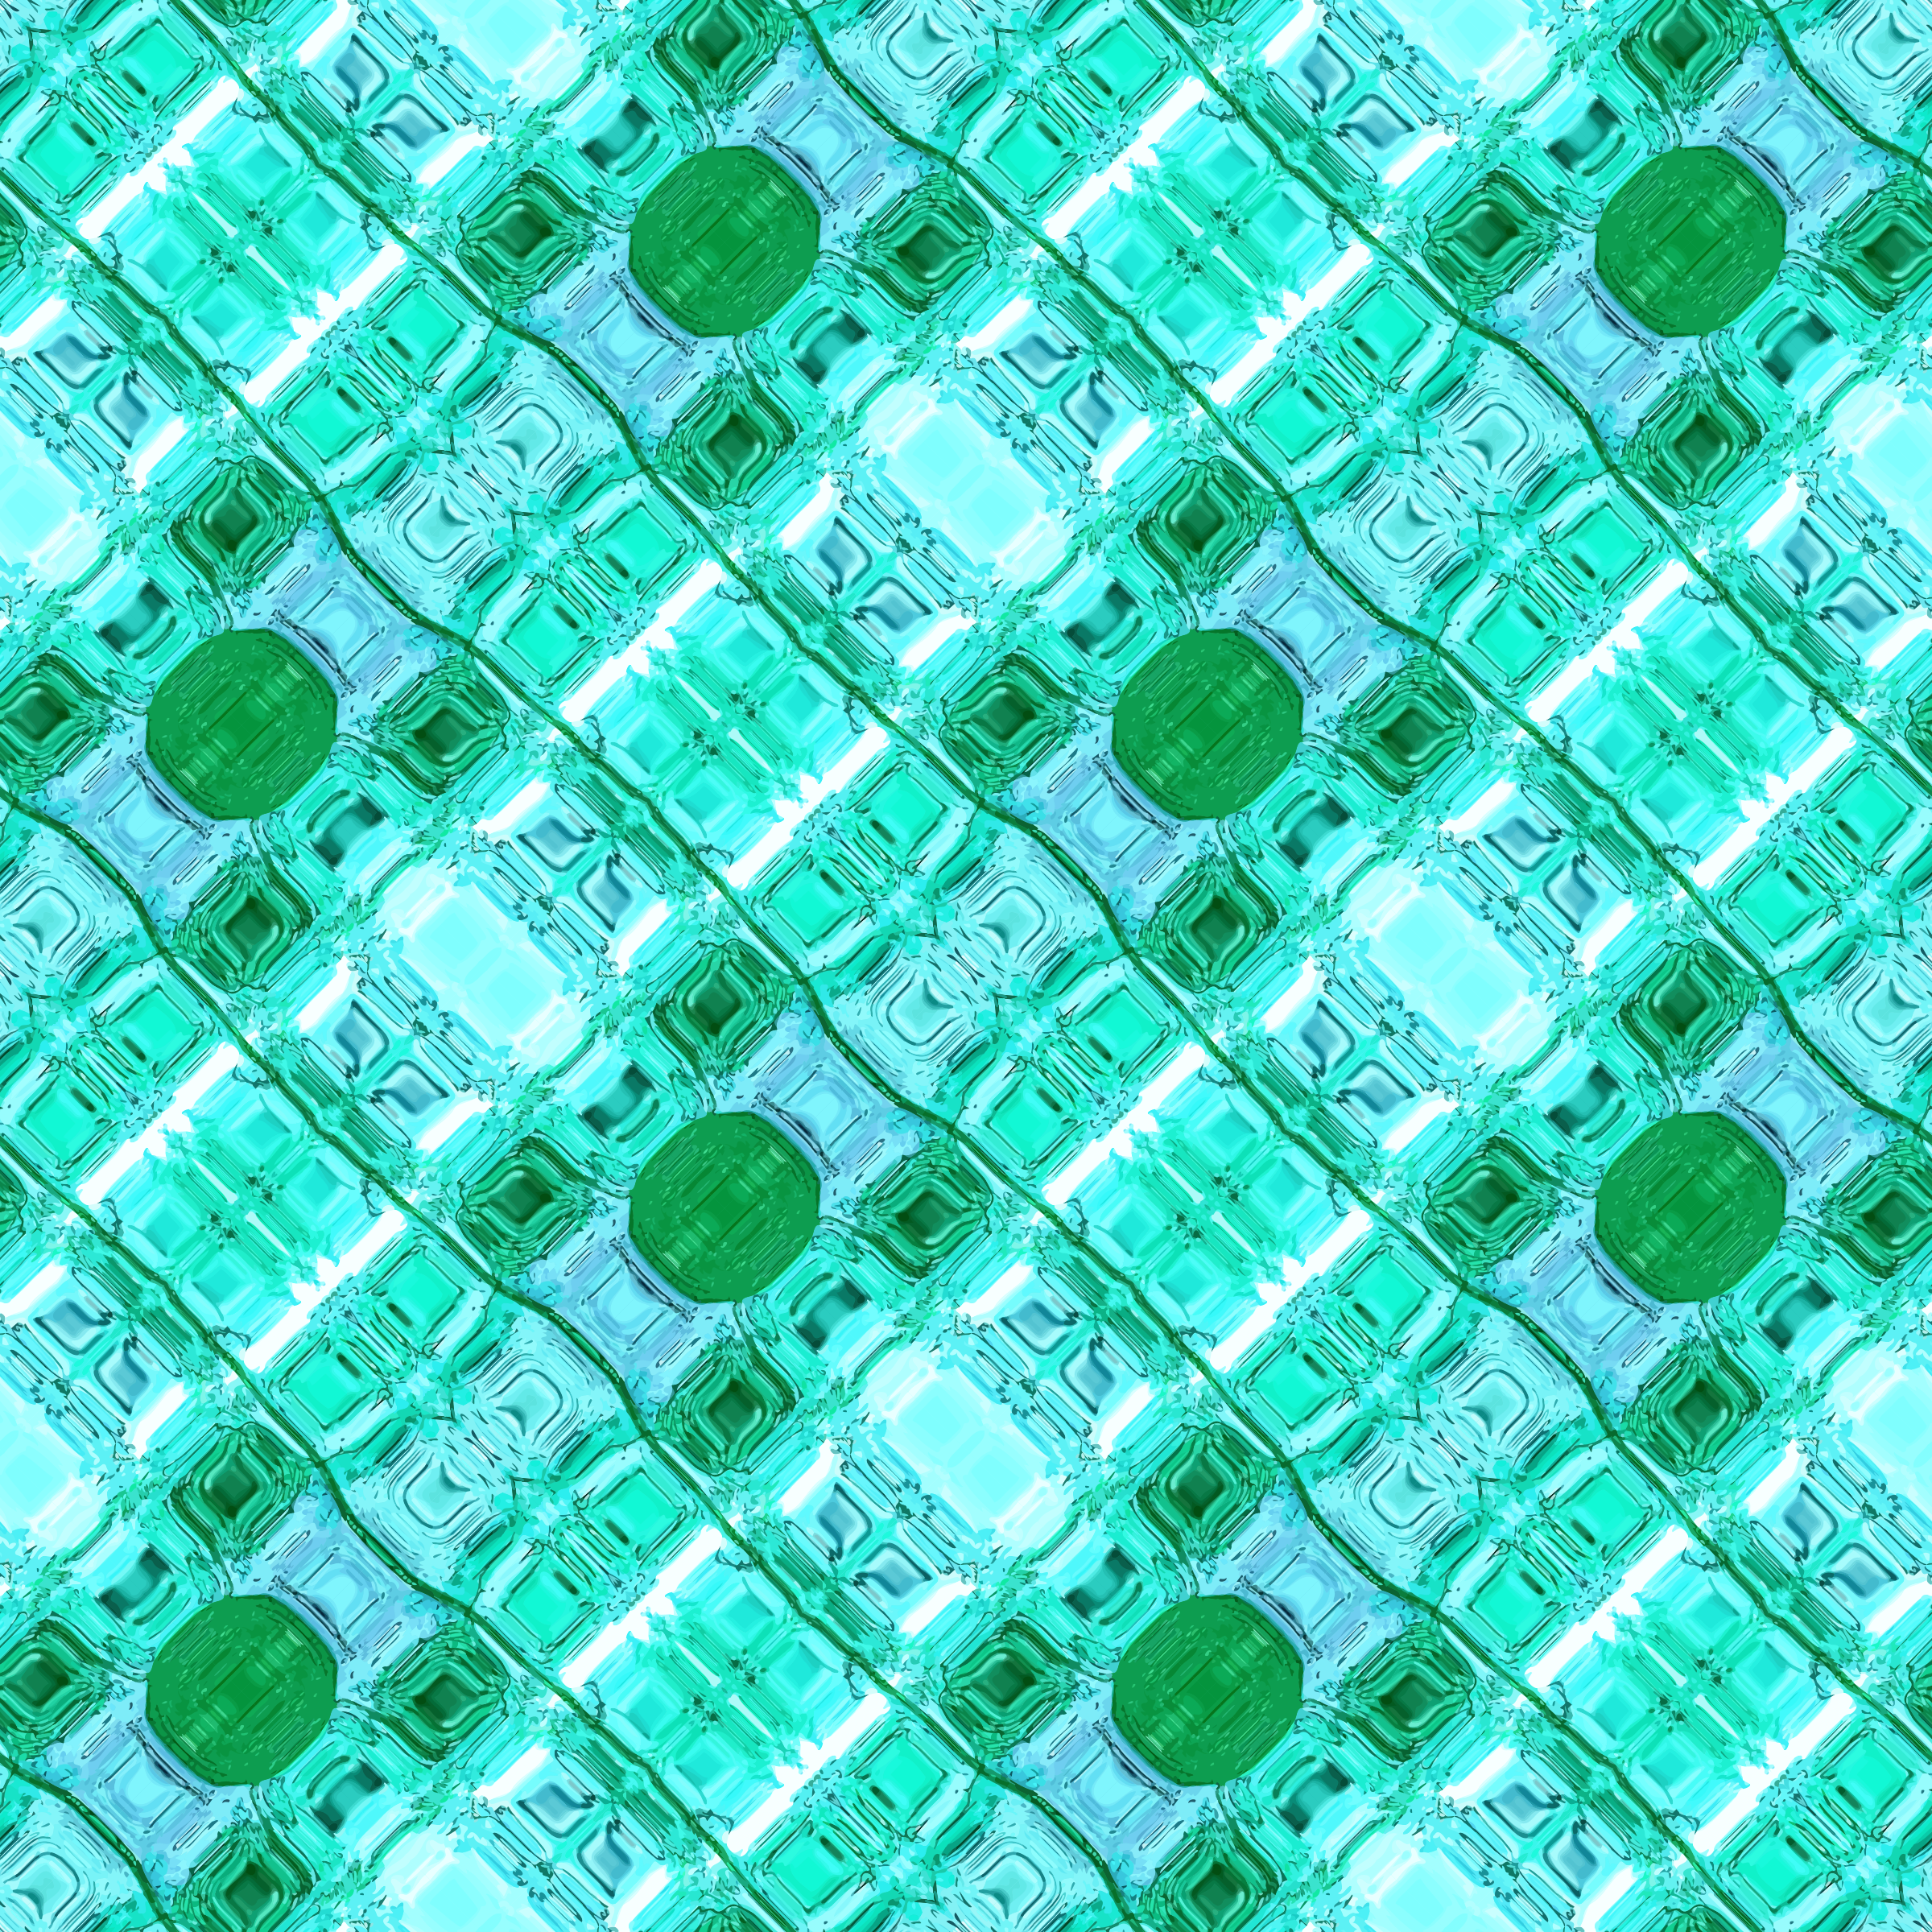 Background pattern 129 (colour 2) by Firkin